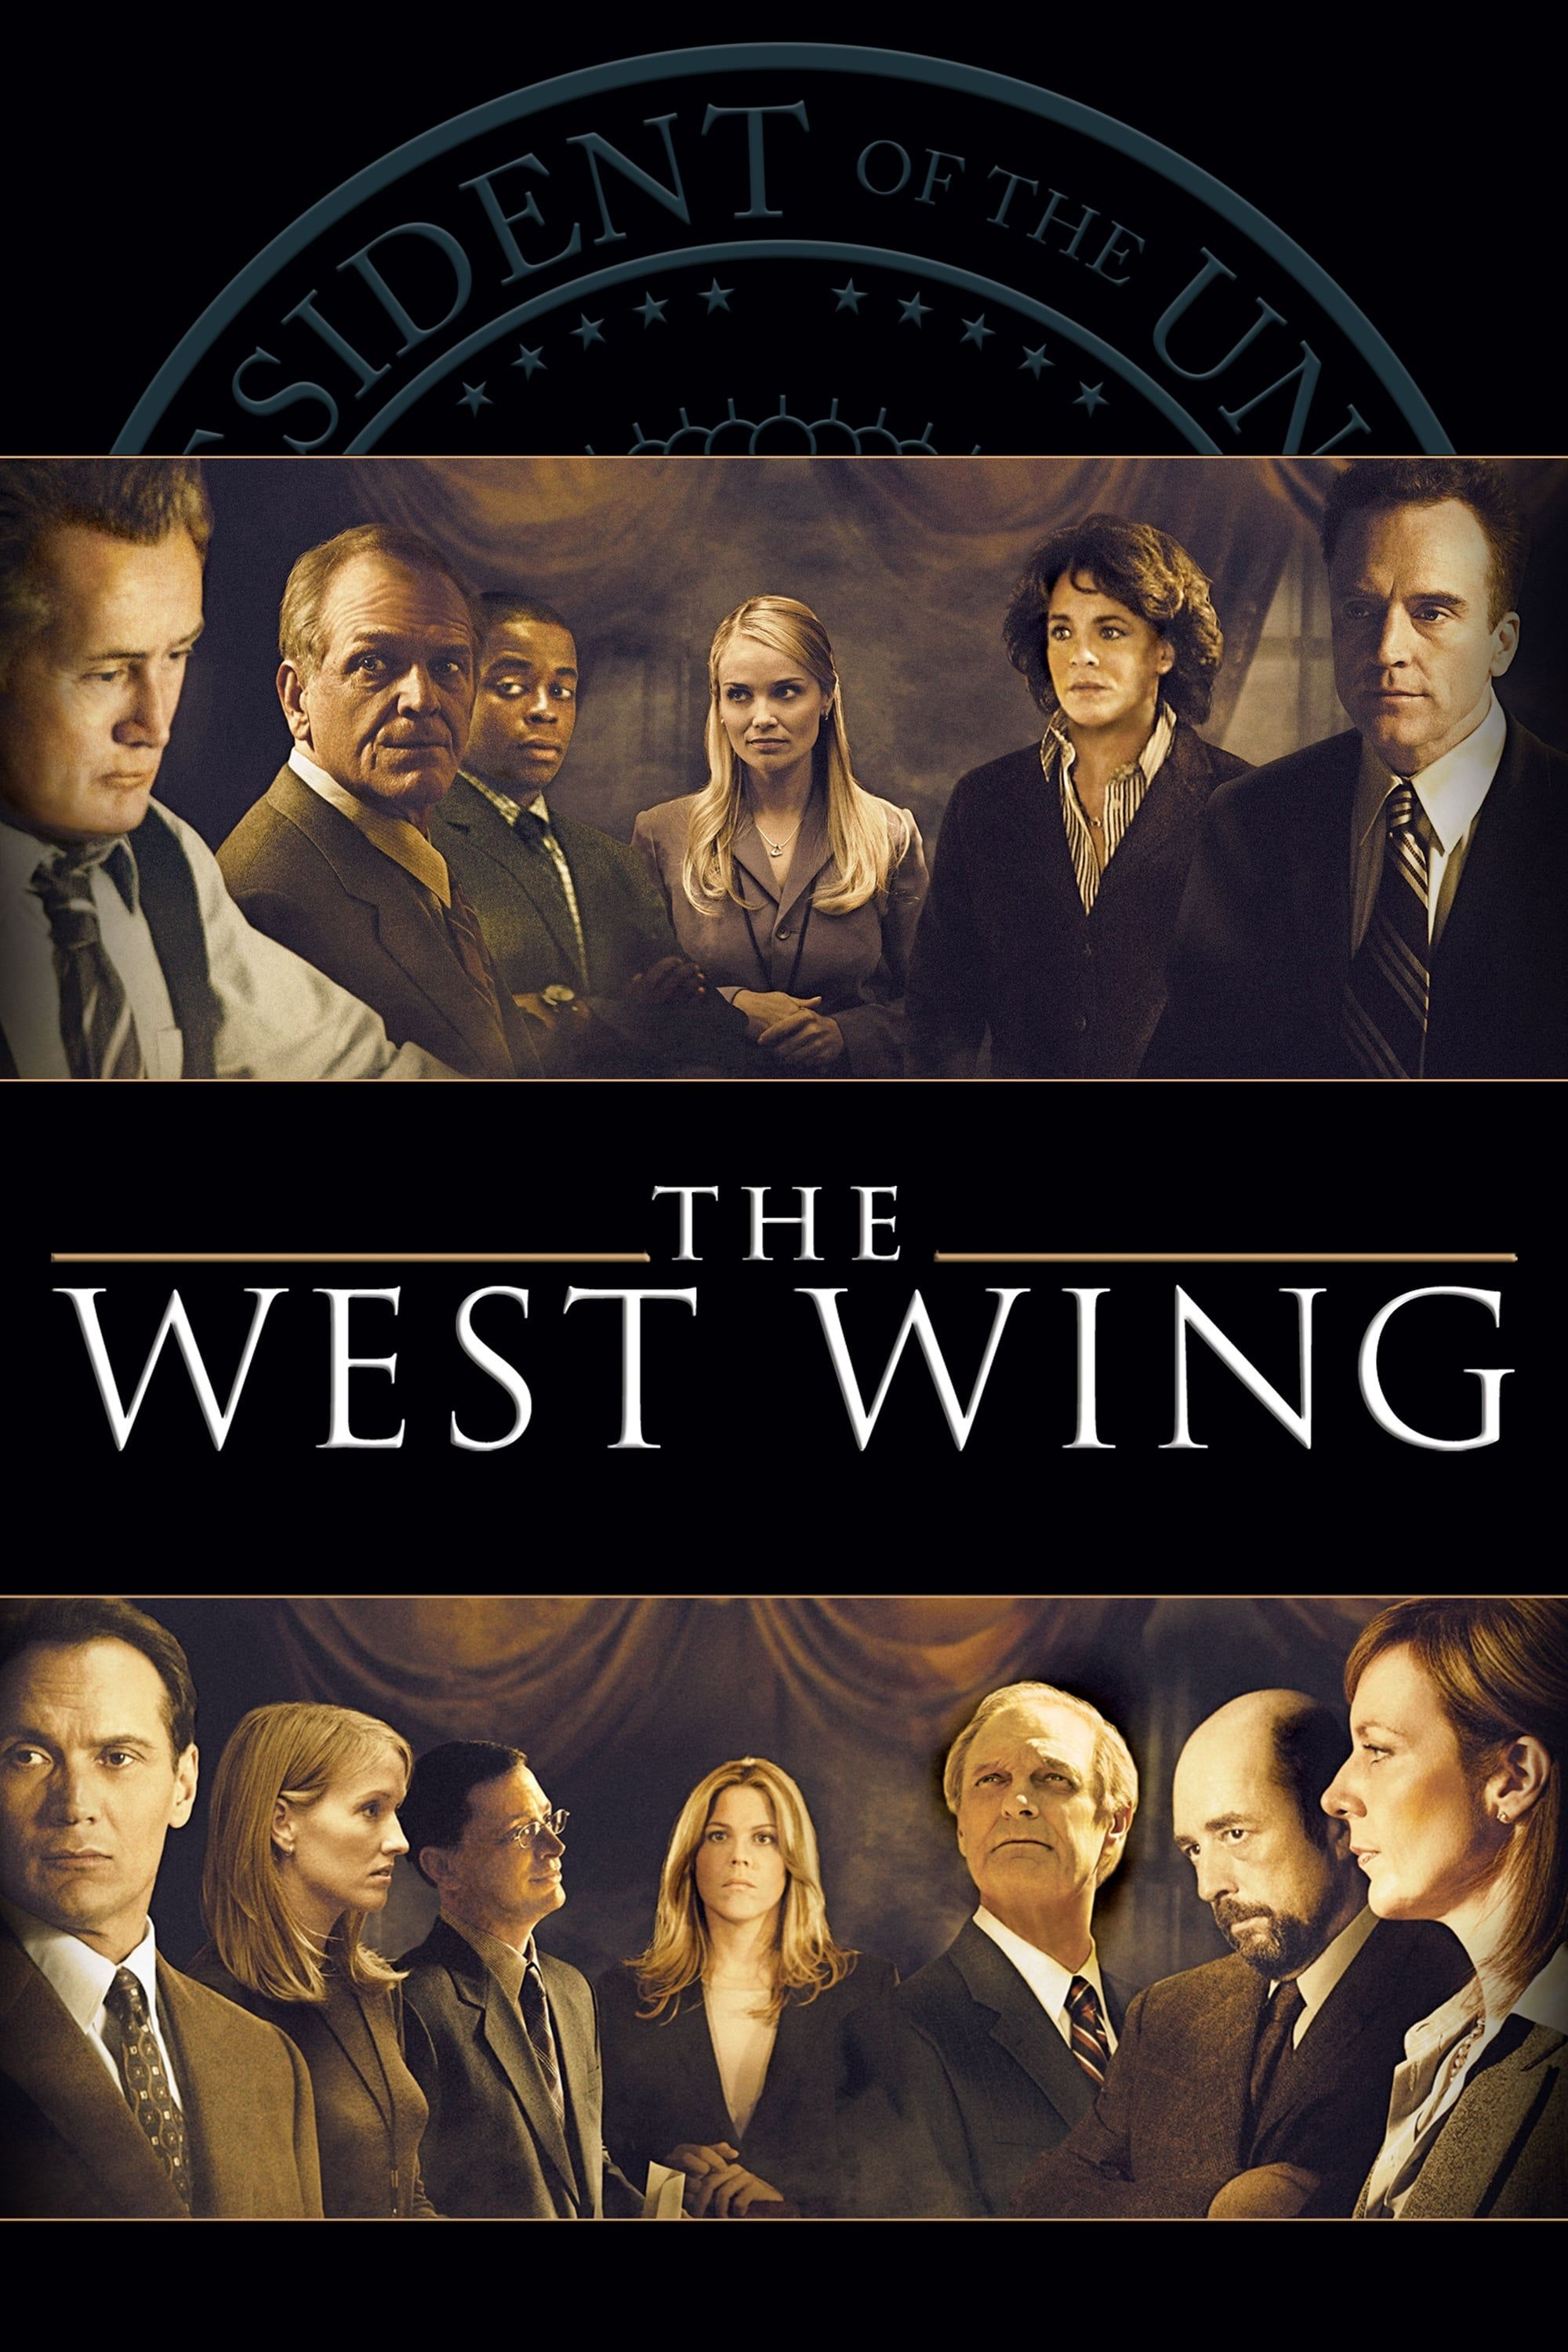 West wing speech on homosexuality and christianity